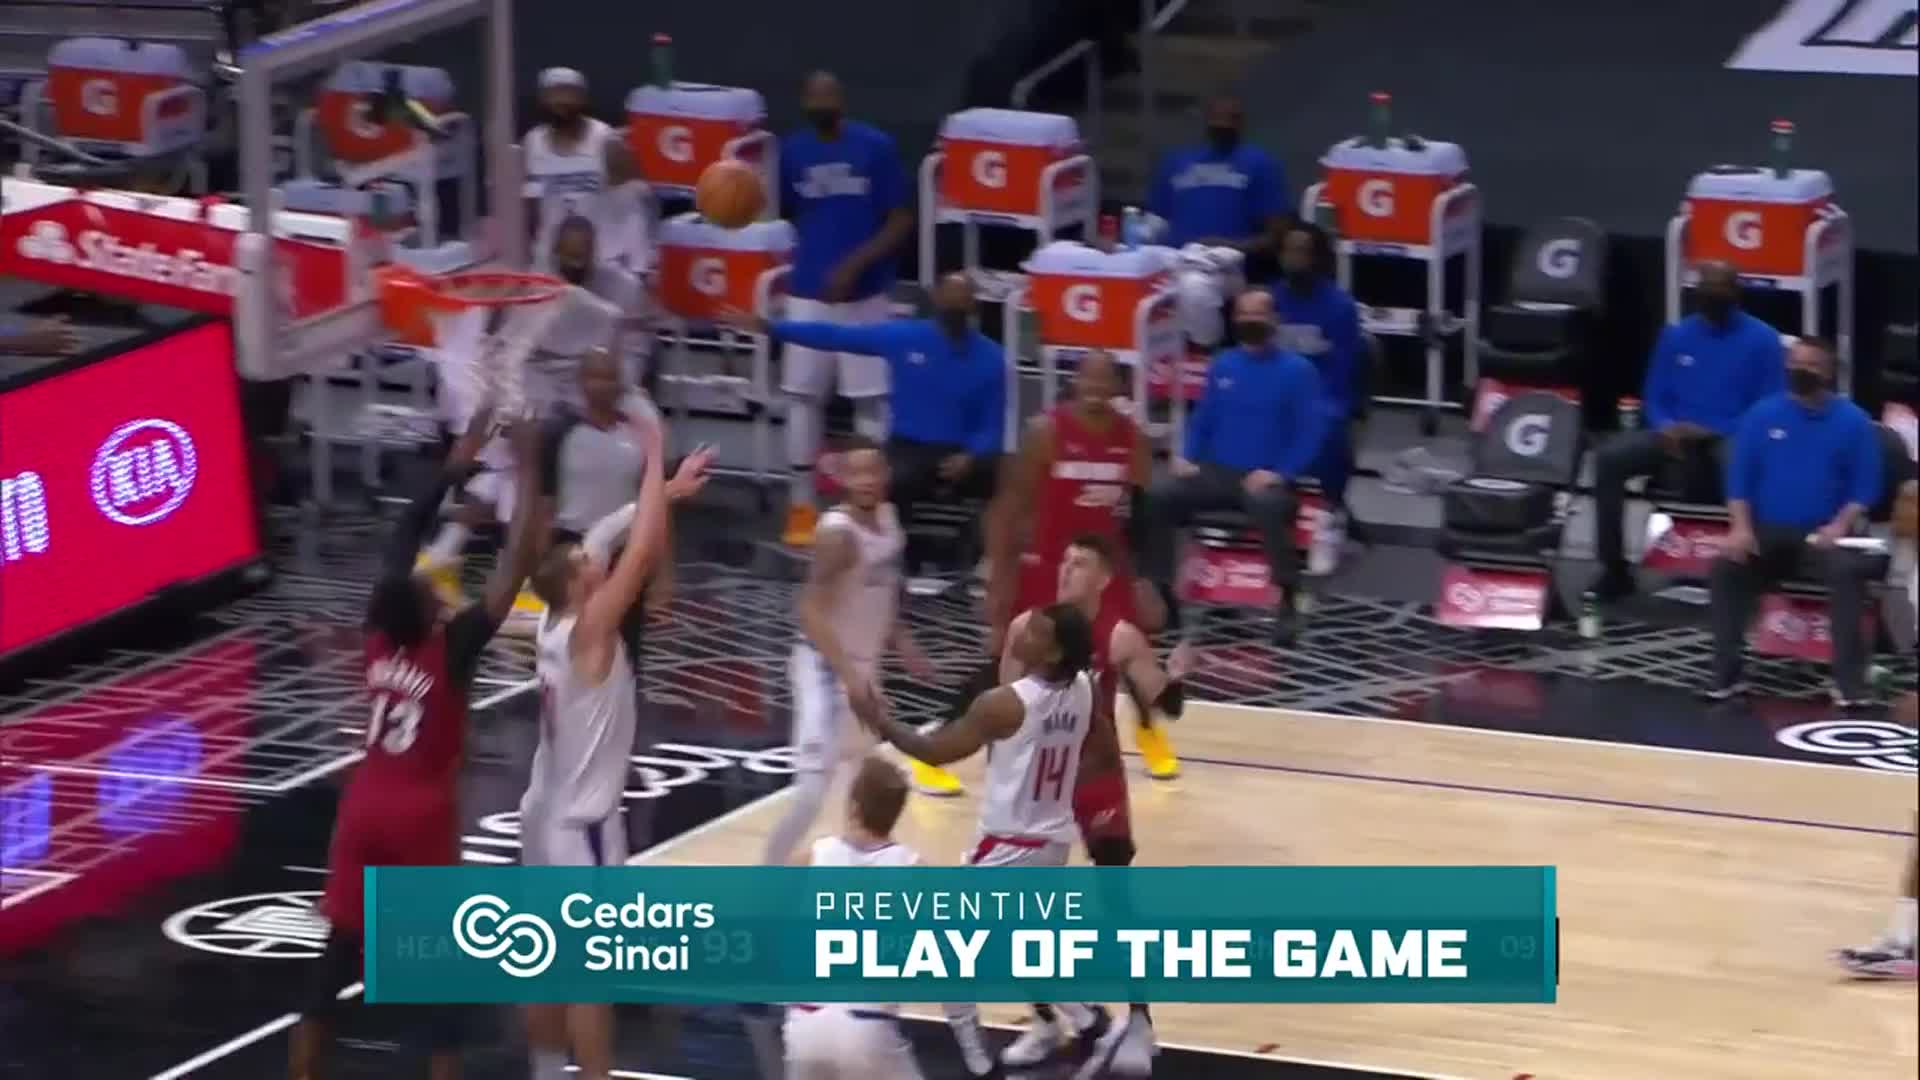 Cedars-Sinai Preventive Play of the Game | Clippers vs Heat (2.15.21)